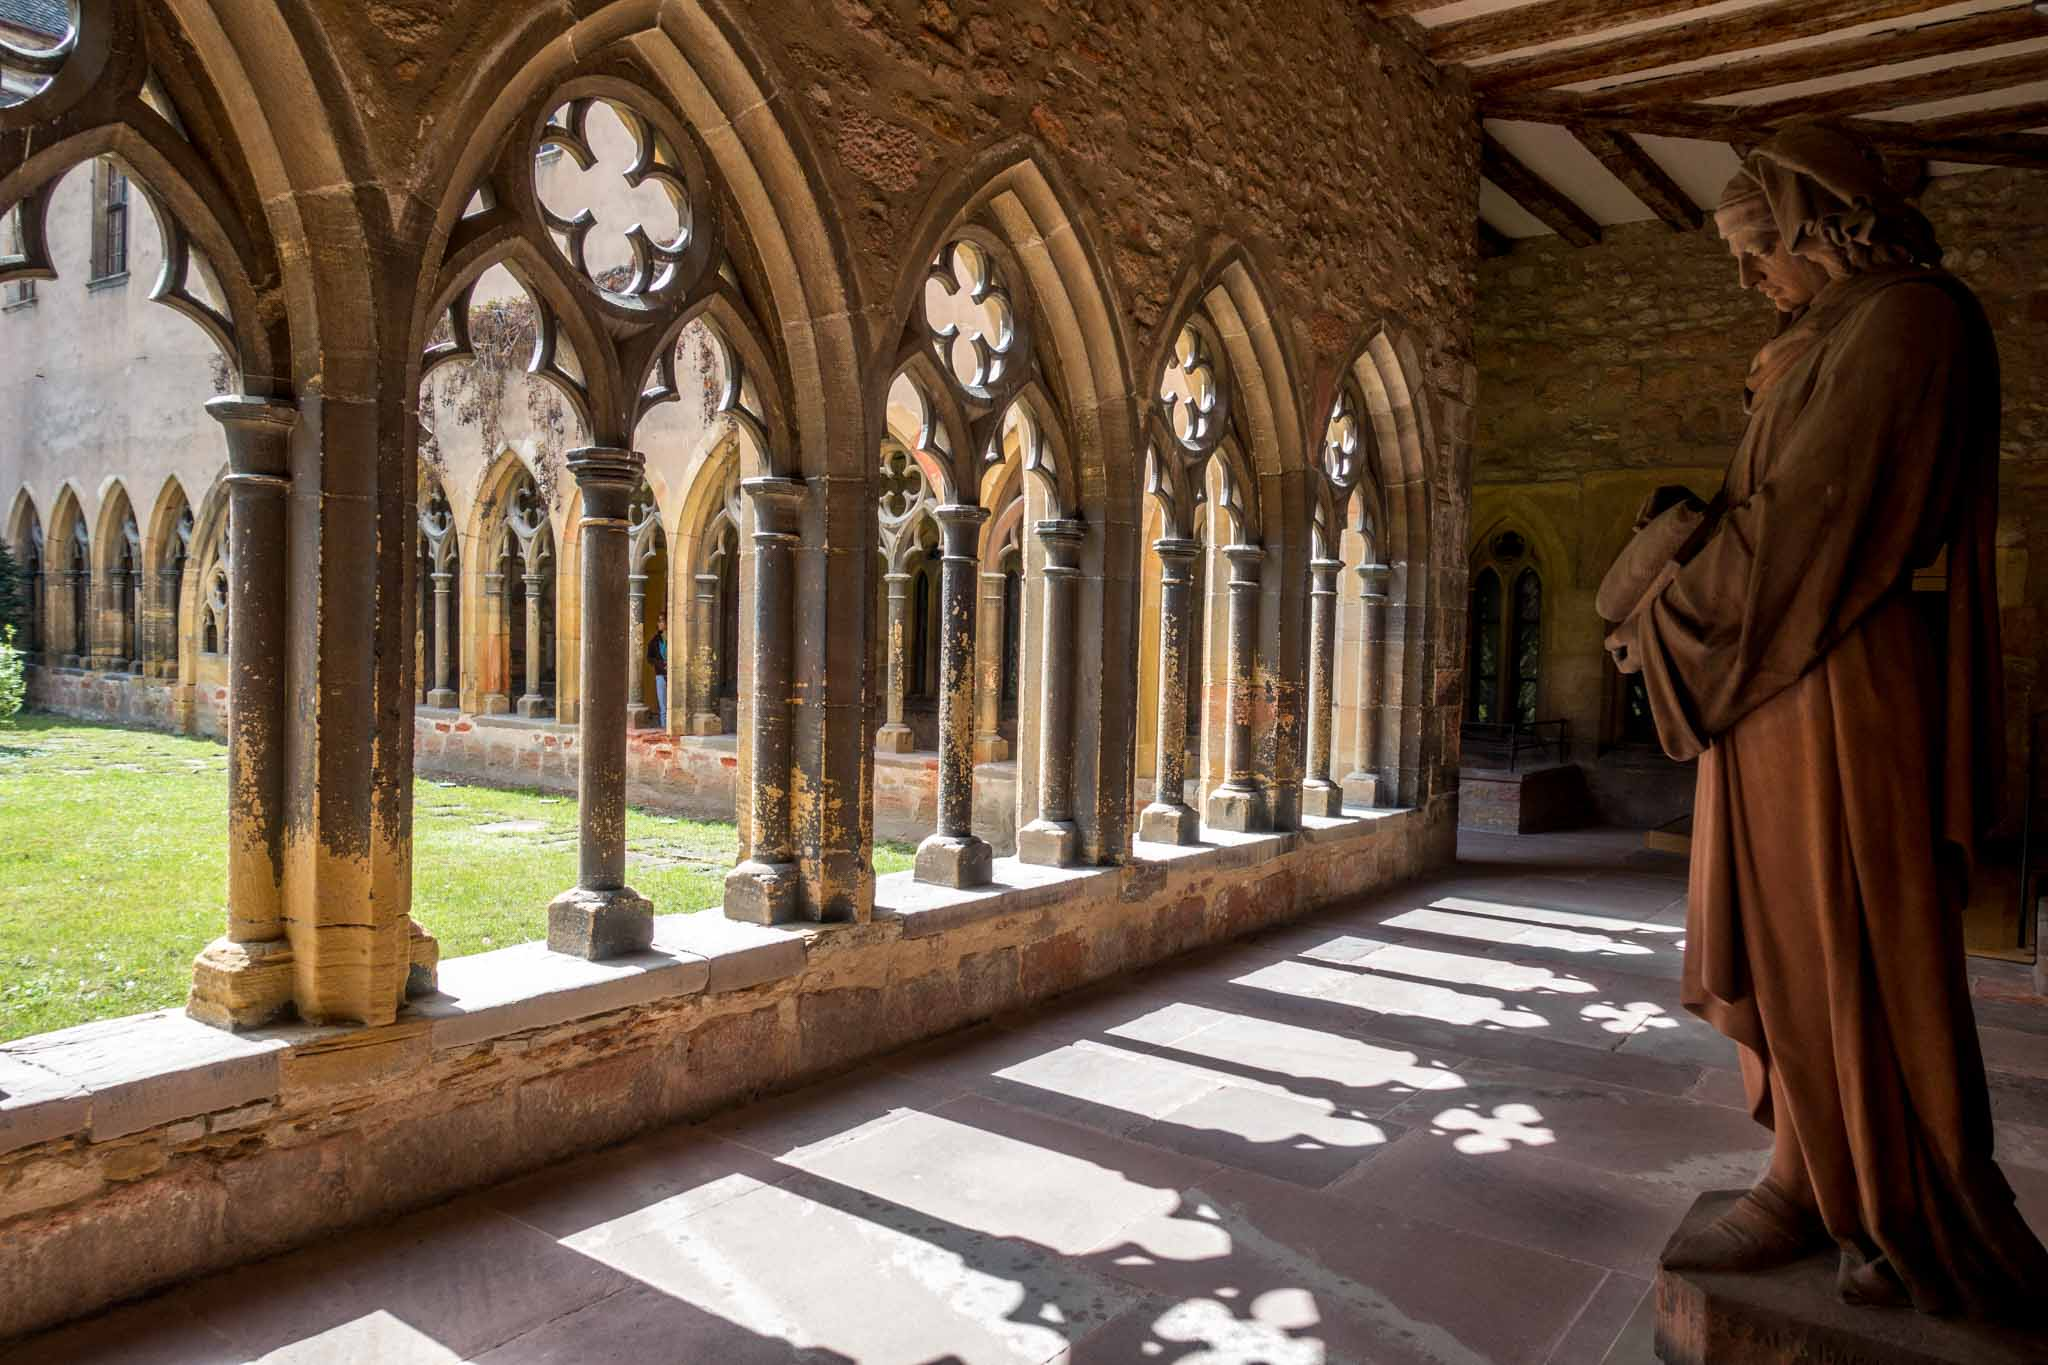 Statue in cloisters with arched windows